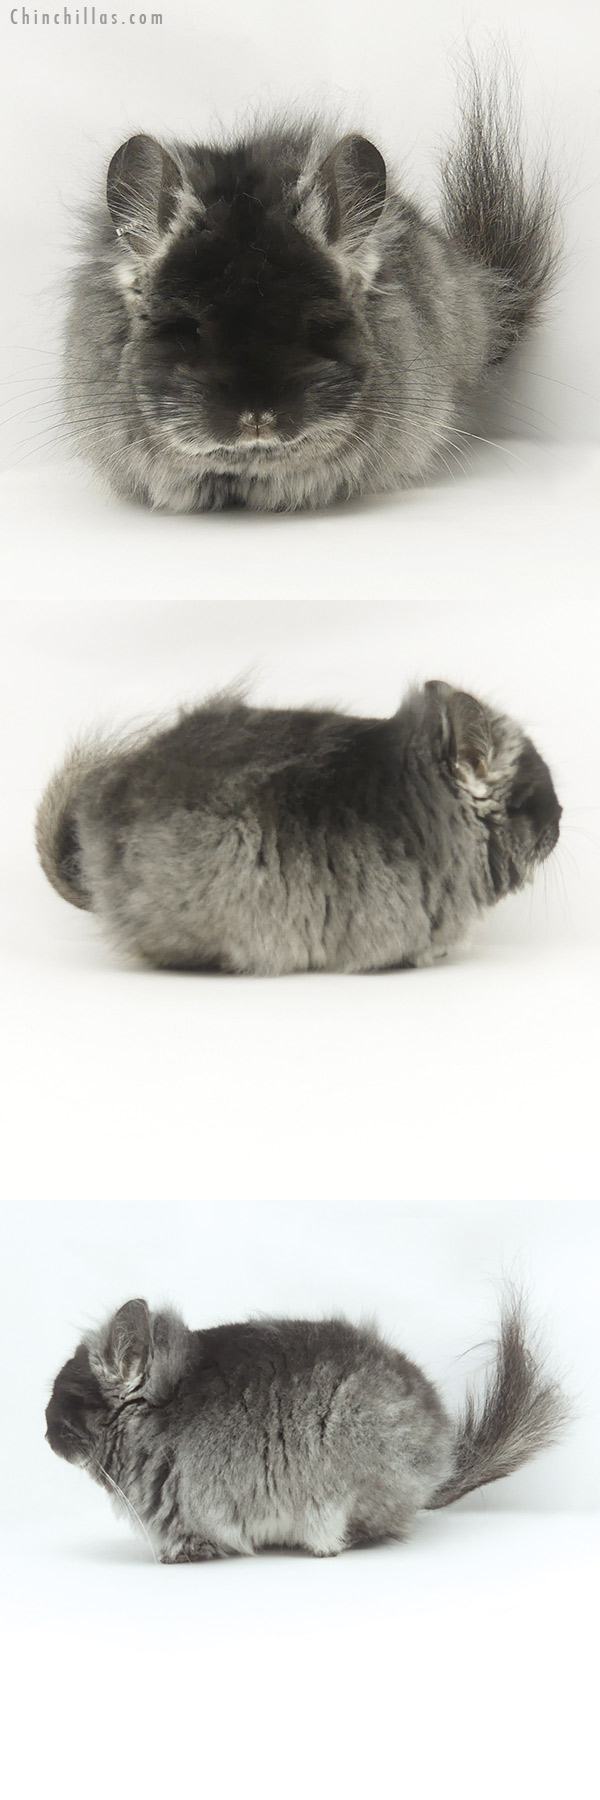 20090 Exceptional Black Velvet G2 CCCU Royal Persian Angora Female Chinchilla